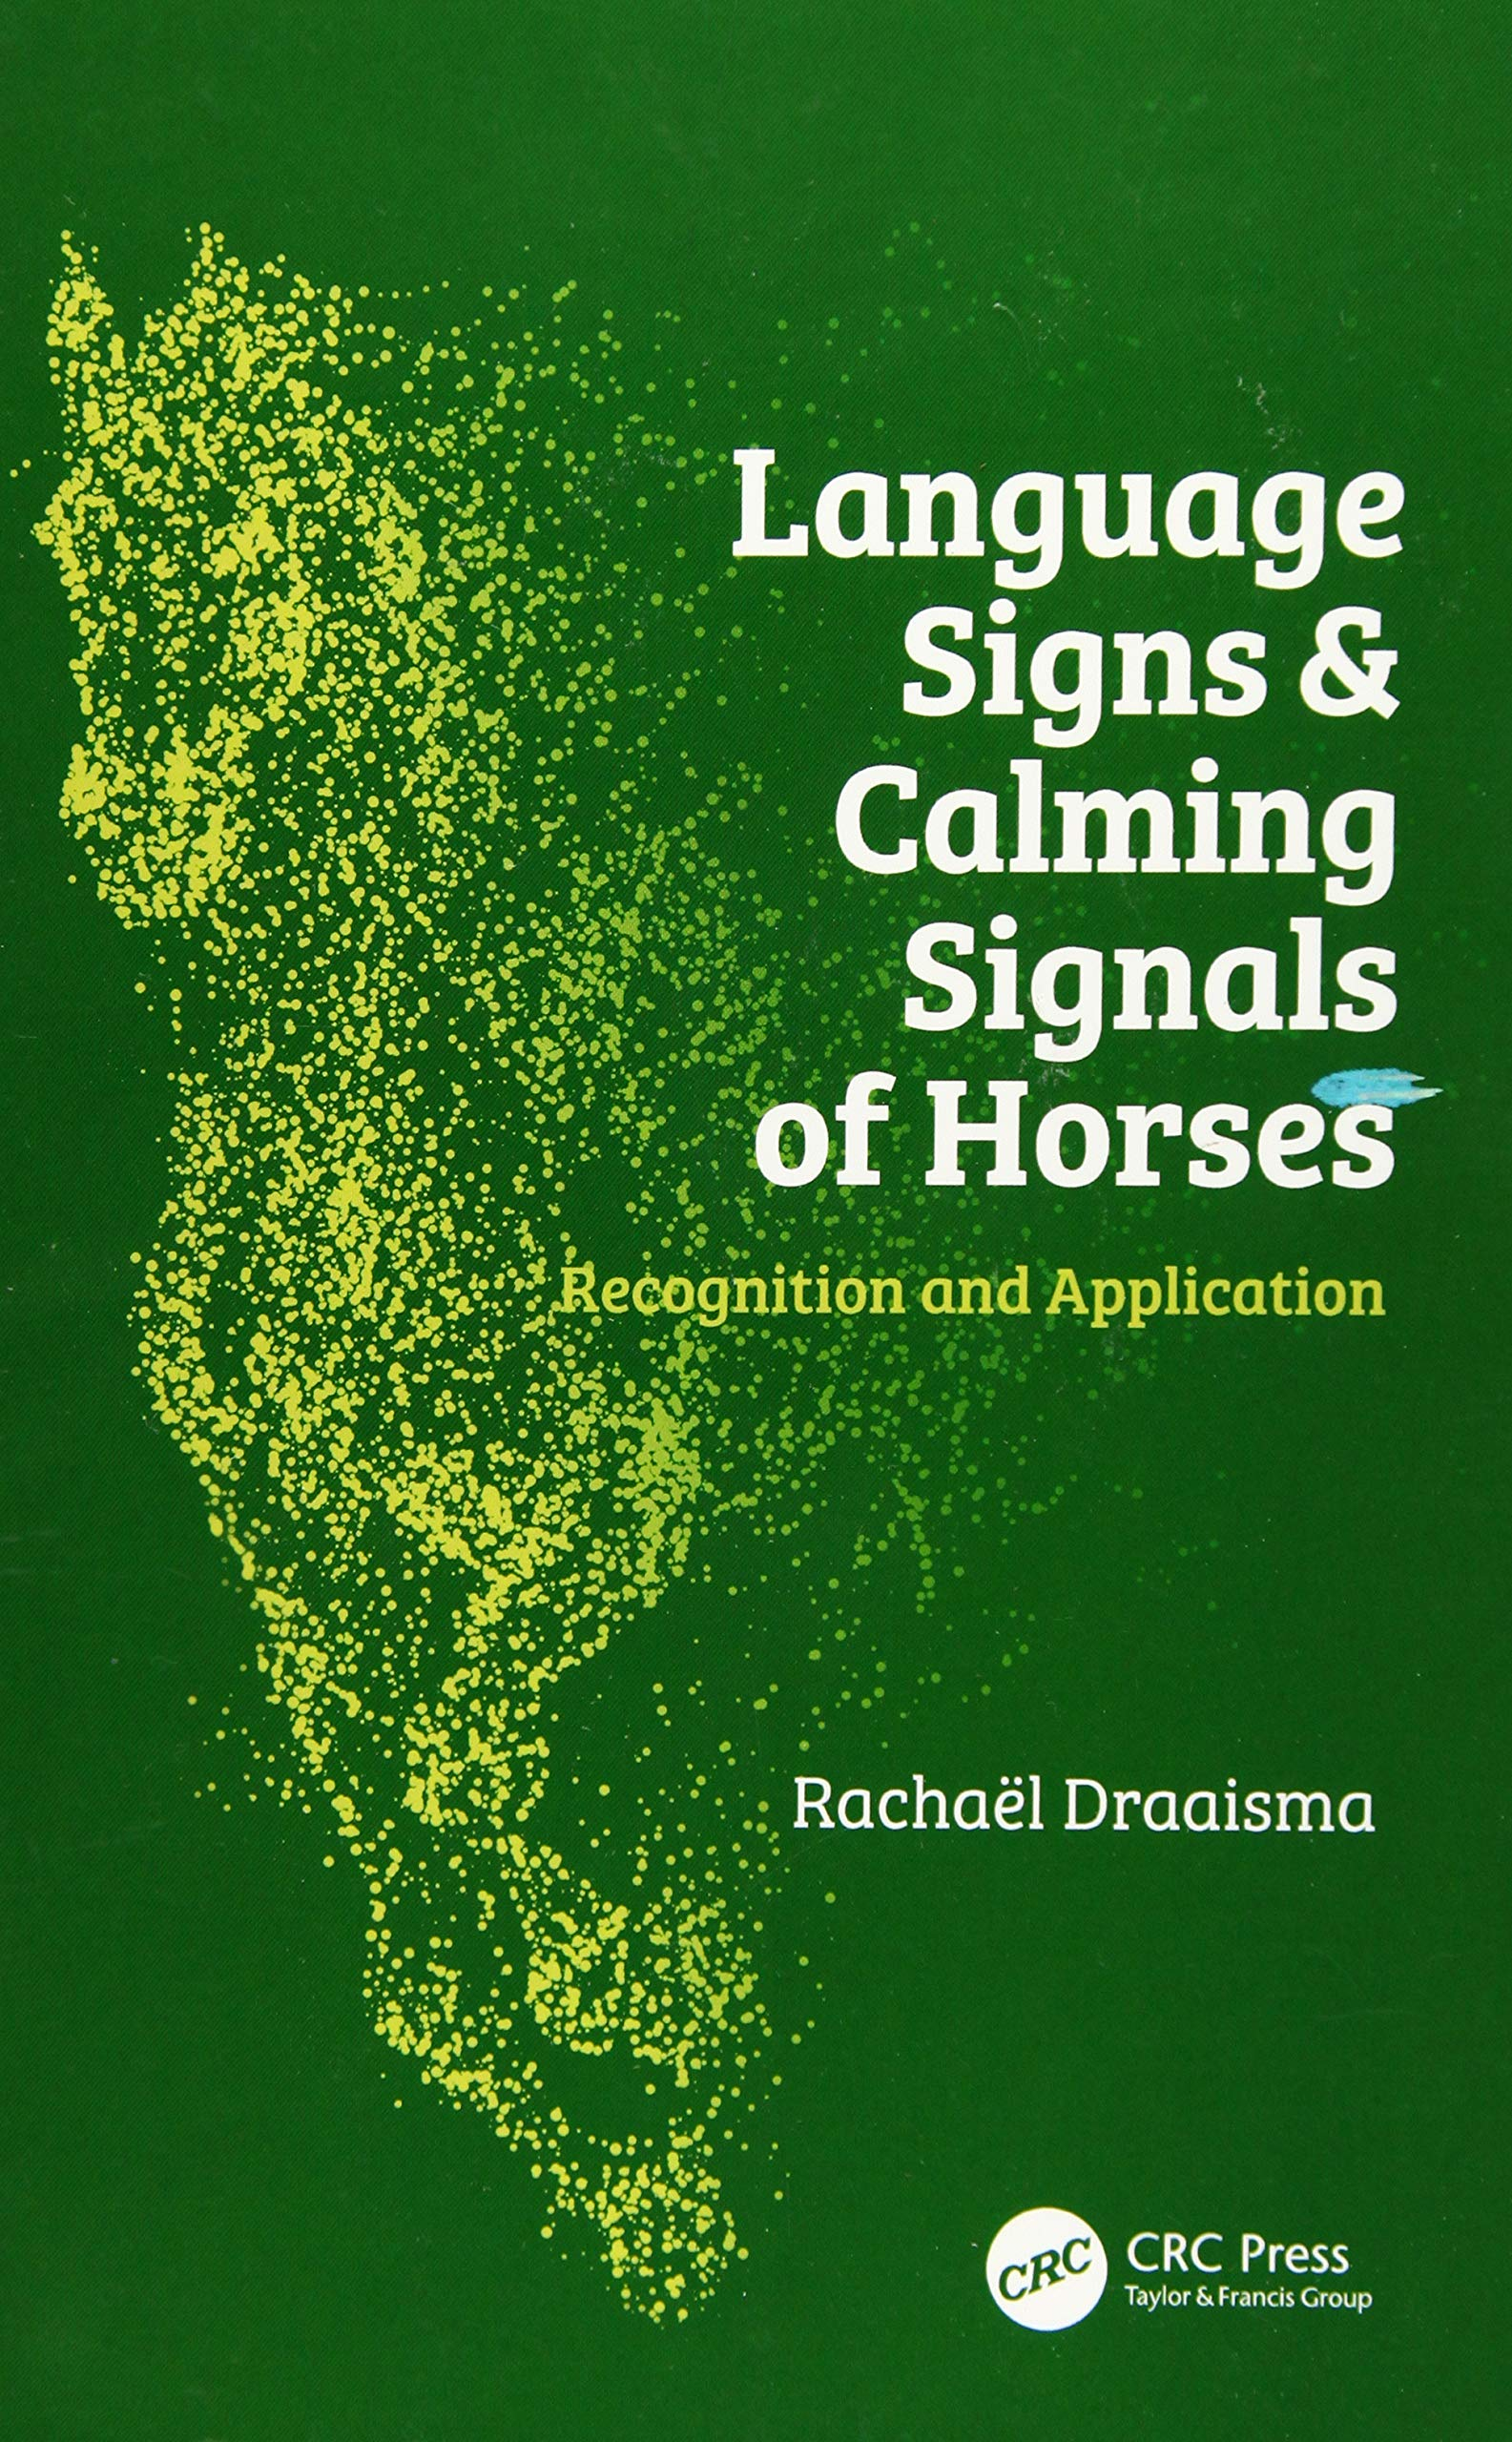 Image OfLanguage Signs And Calming Signals Of Horses: Recognition And Application